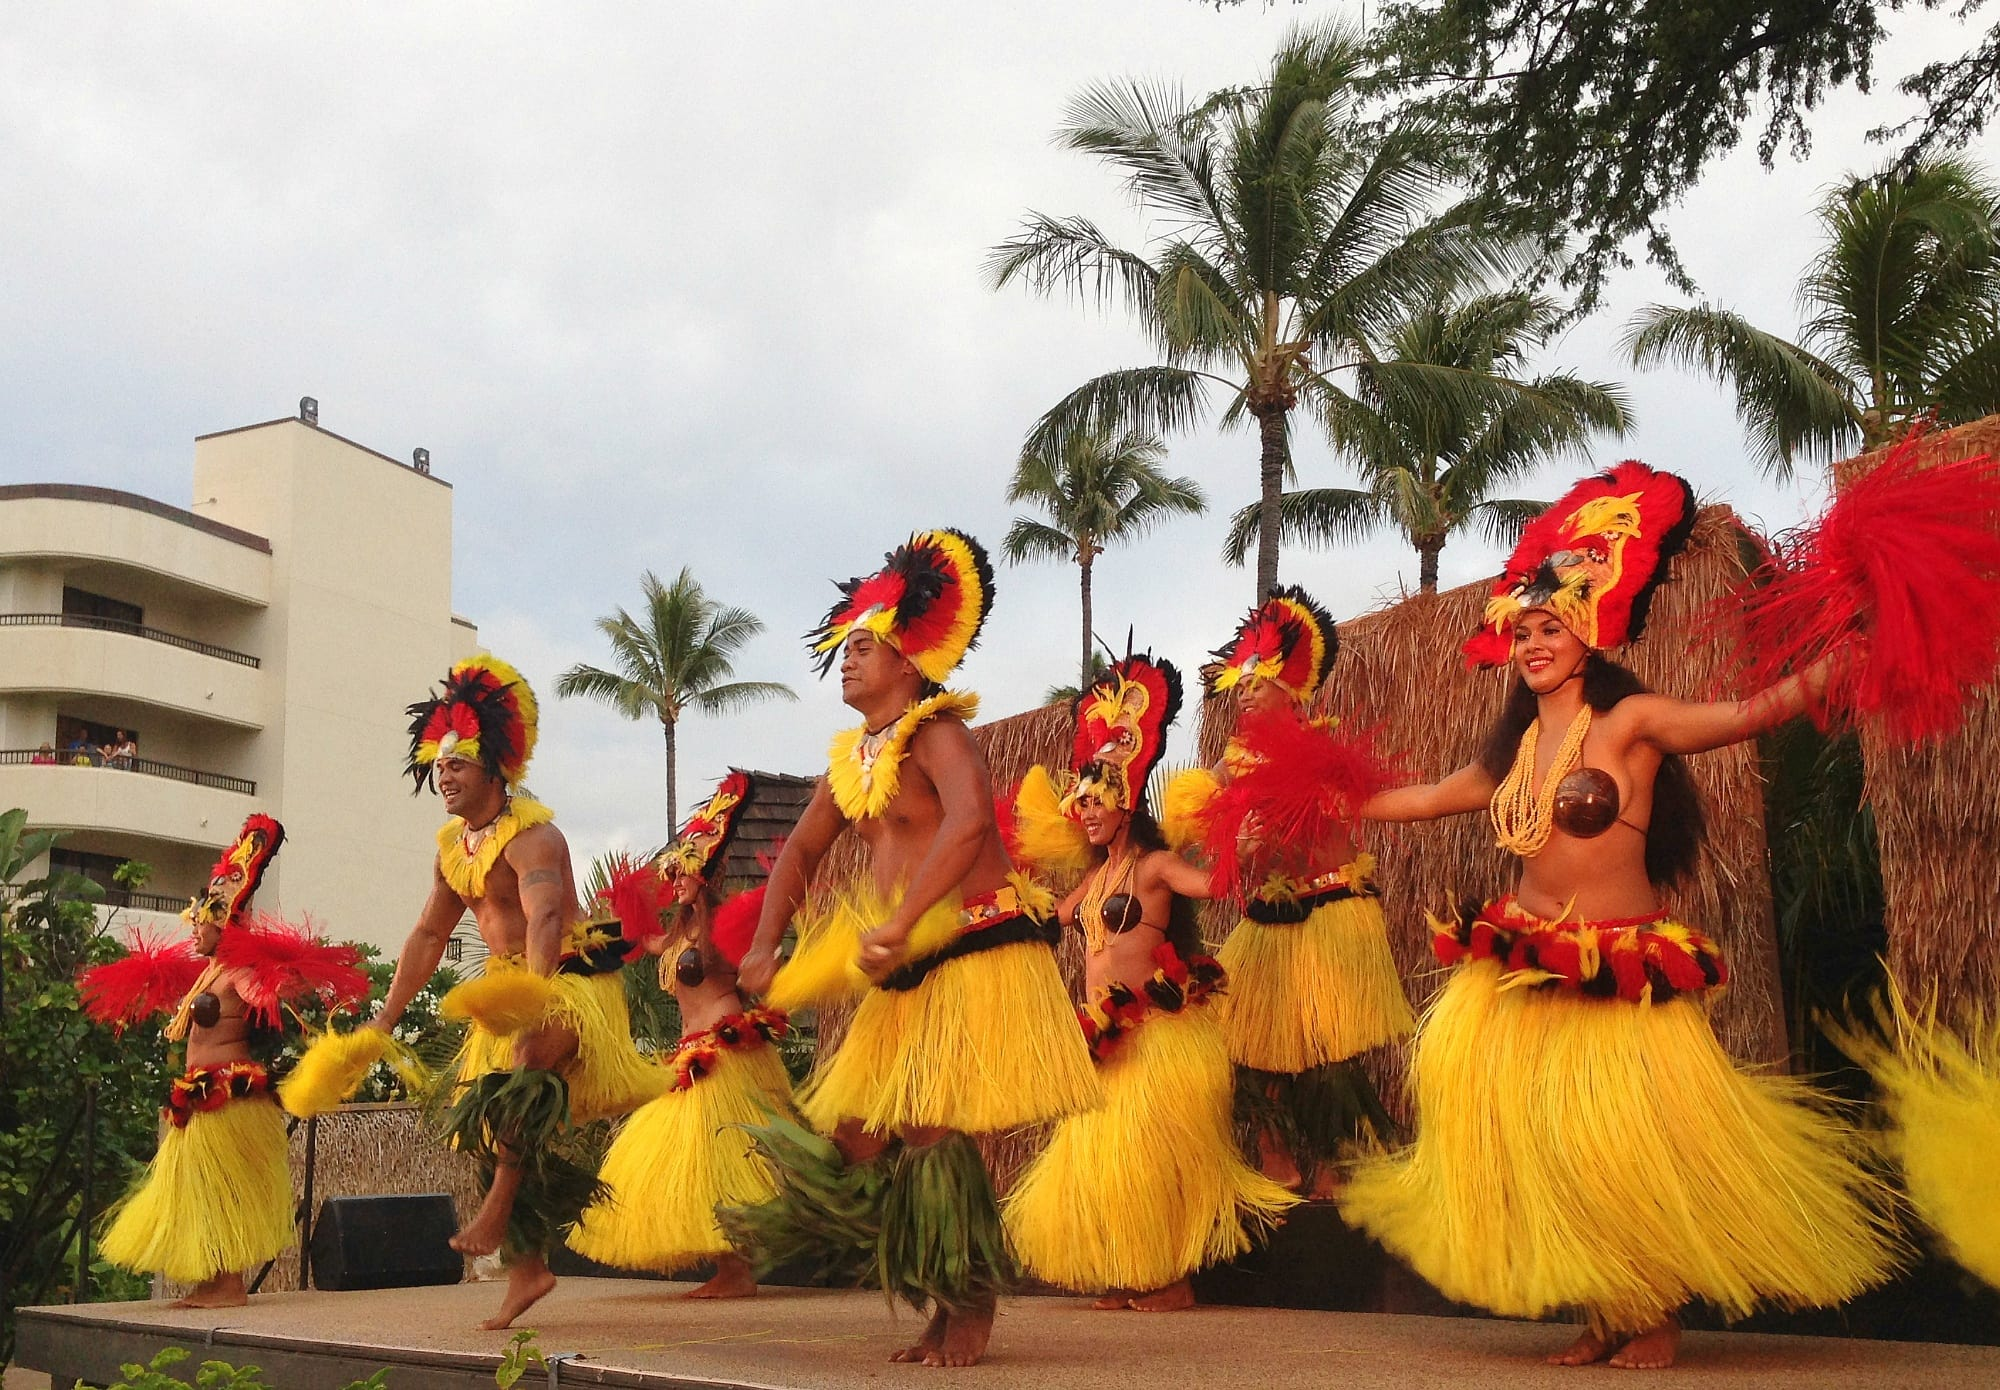 Maui Nui Luau at Black Rock, hosted by the Sheraton Maui Resort & Spa ~ Kaanapali with kids